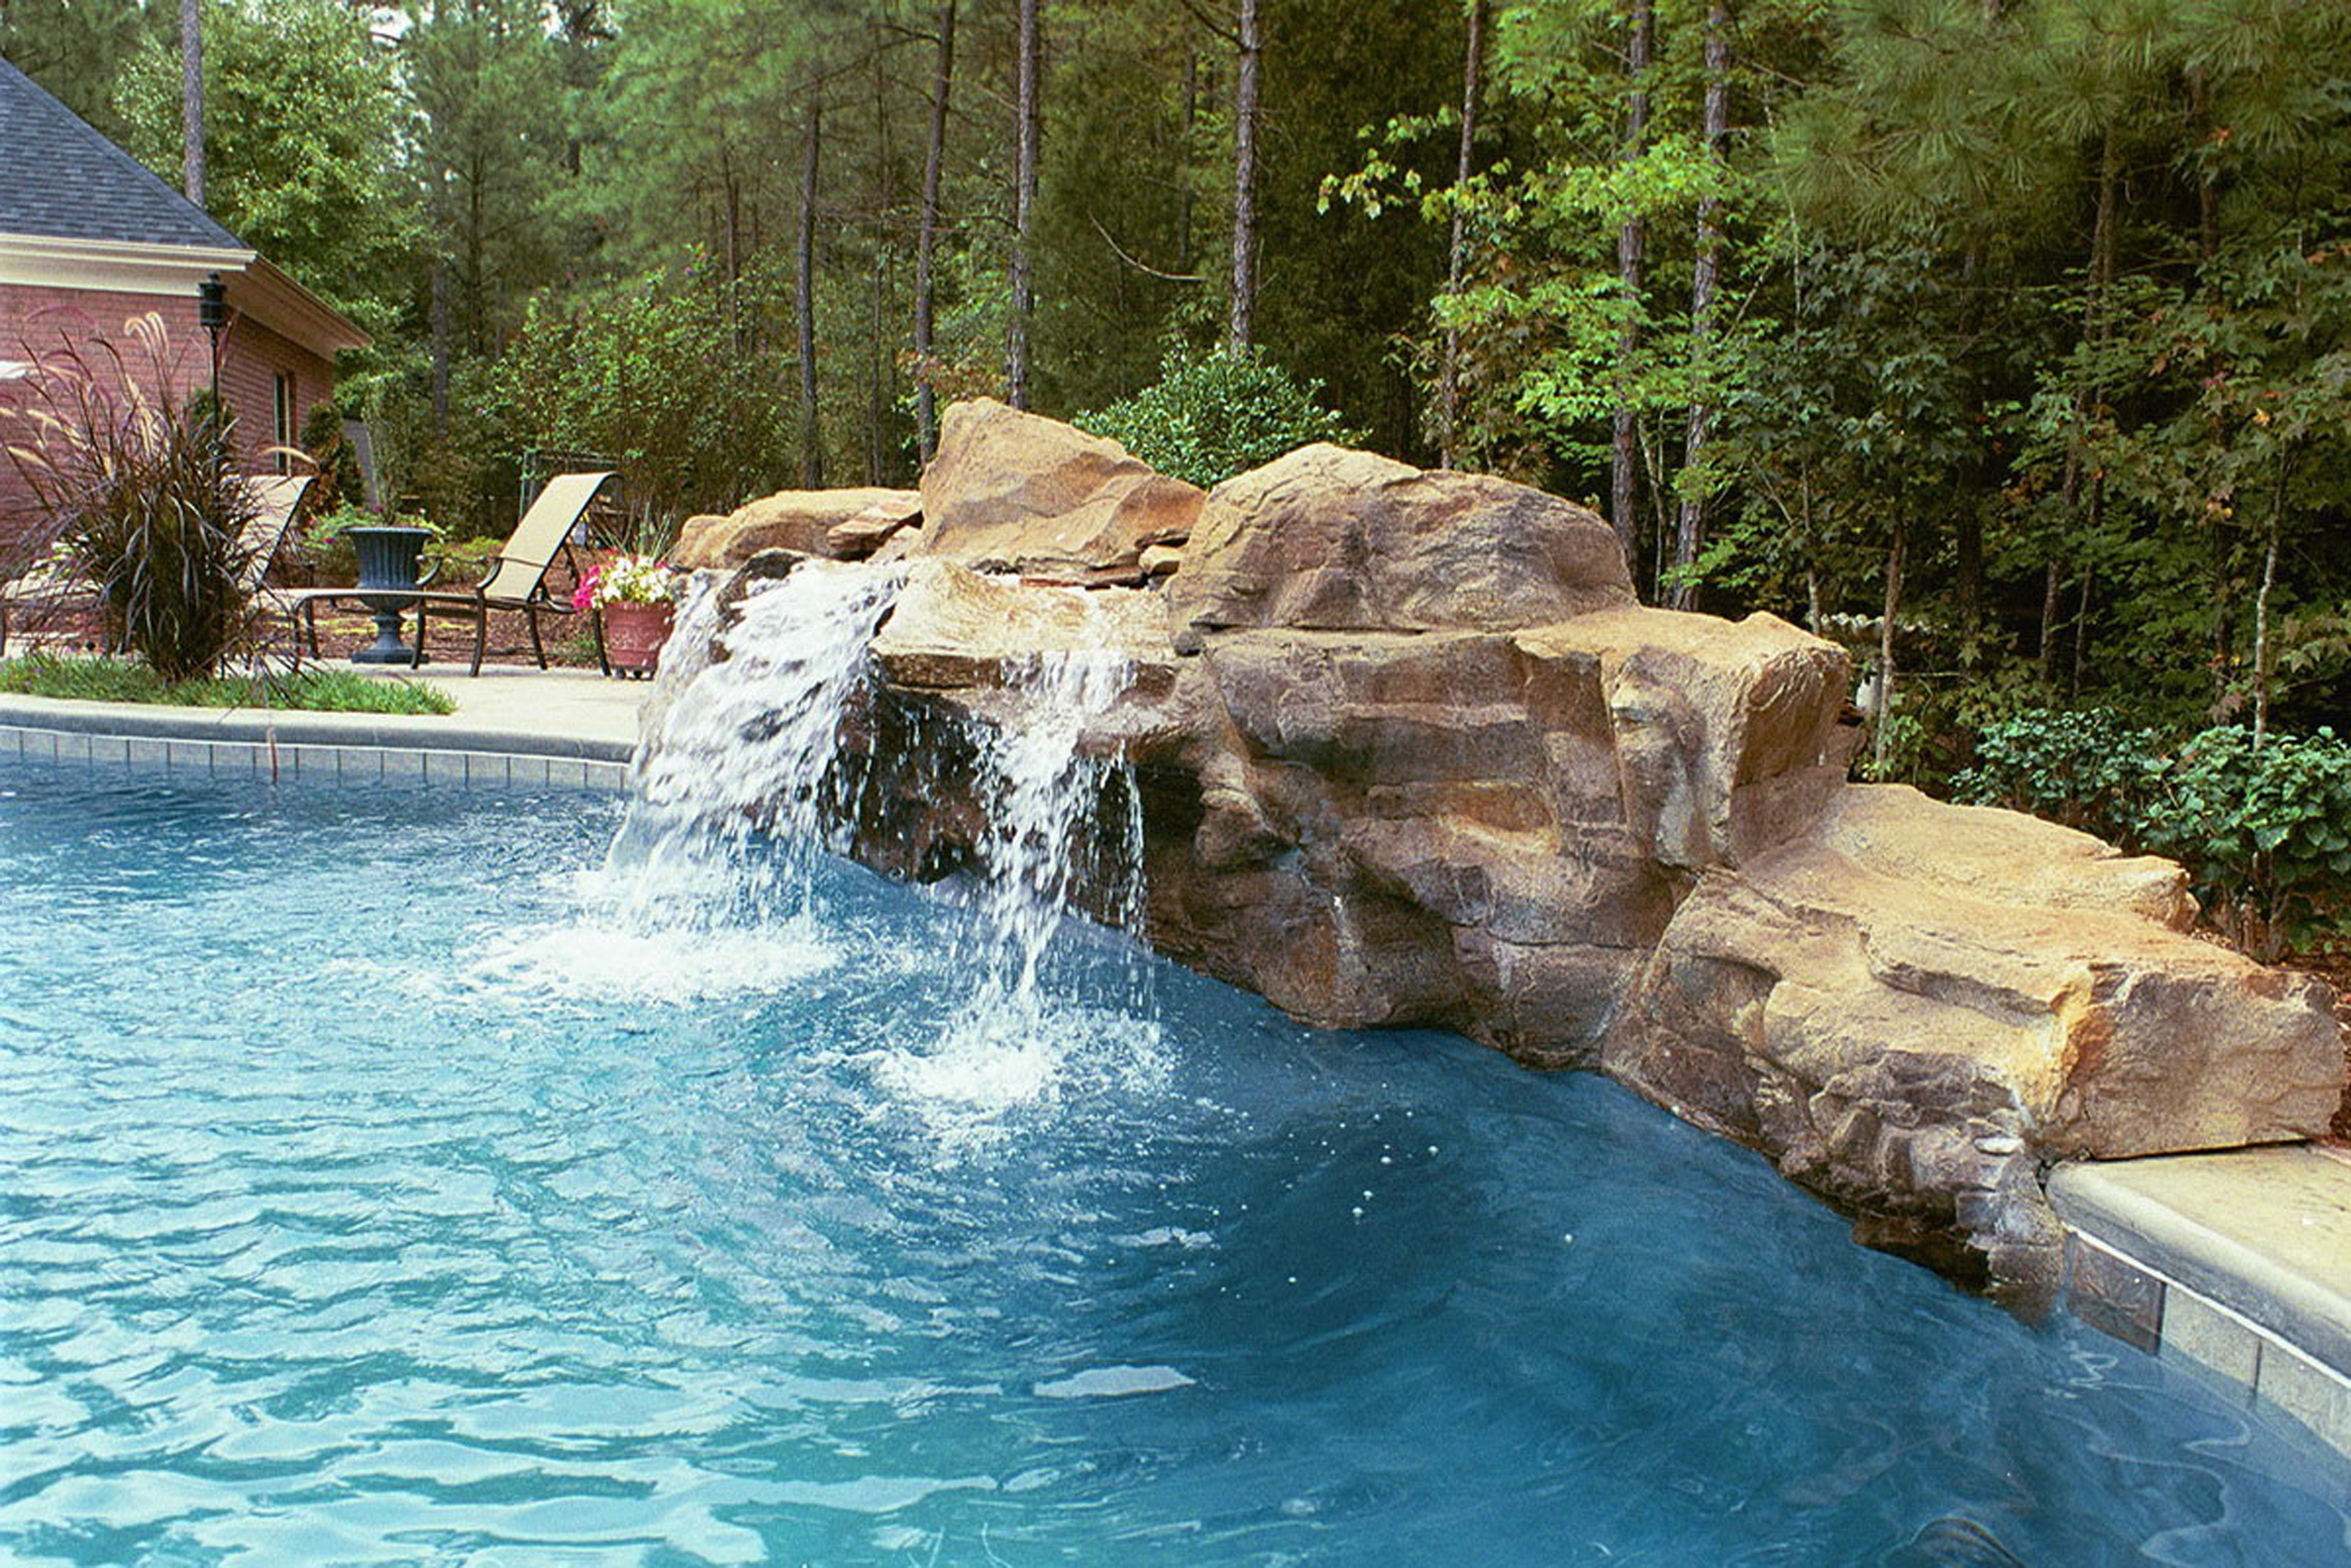 Amazing Pool Design Inspiration With Blue Pool Water And Brown Stones With Waterfall Beautiful Pool Design Inspiration (View 3 of 28)